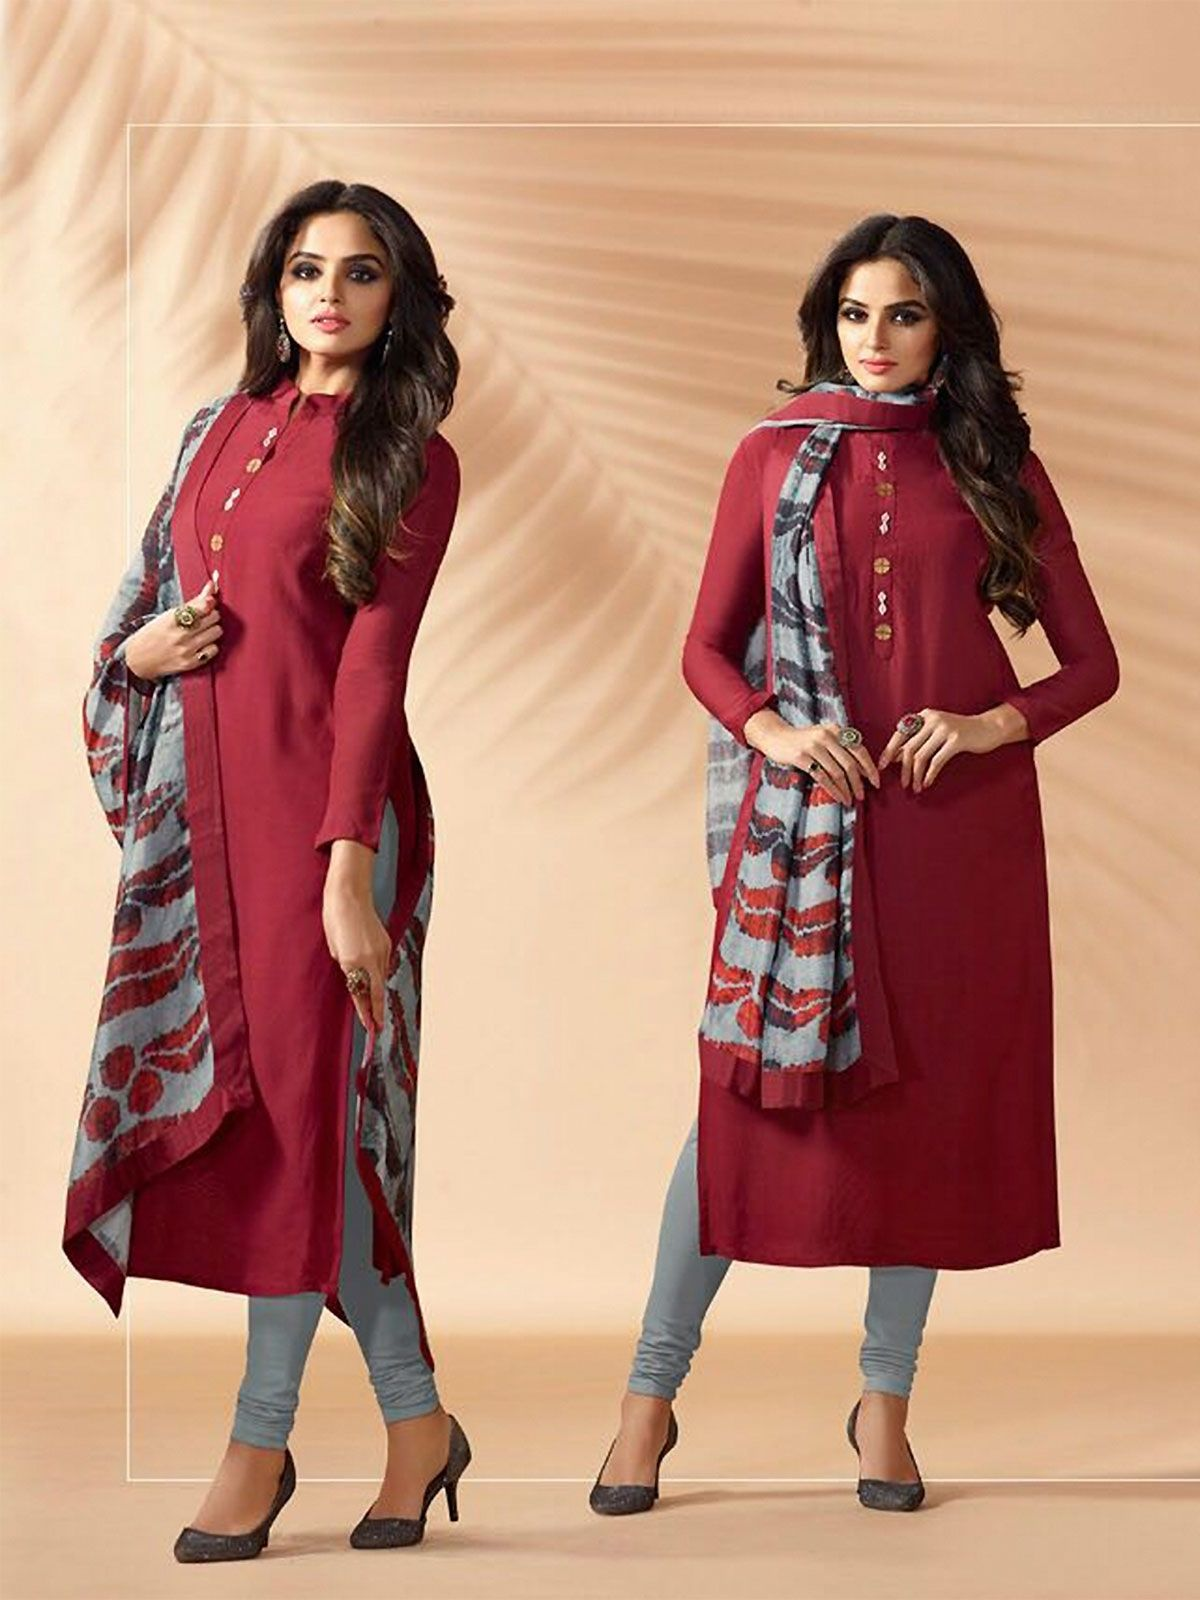 acf1a3fd1f6 Buy new arrivals indian wedding maroon churidar suit in different styles  and designs to make a powerful style statement. Order this stunning salwar  kameez ...